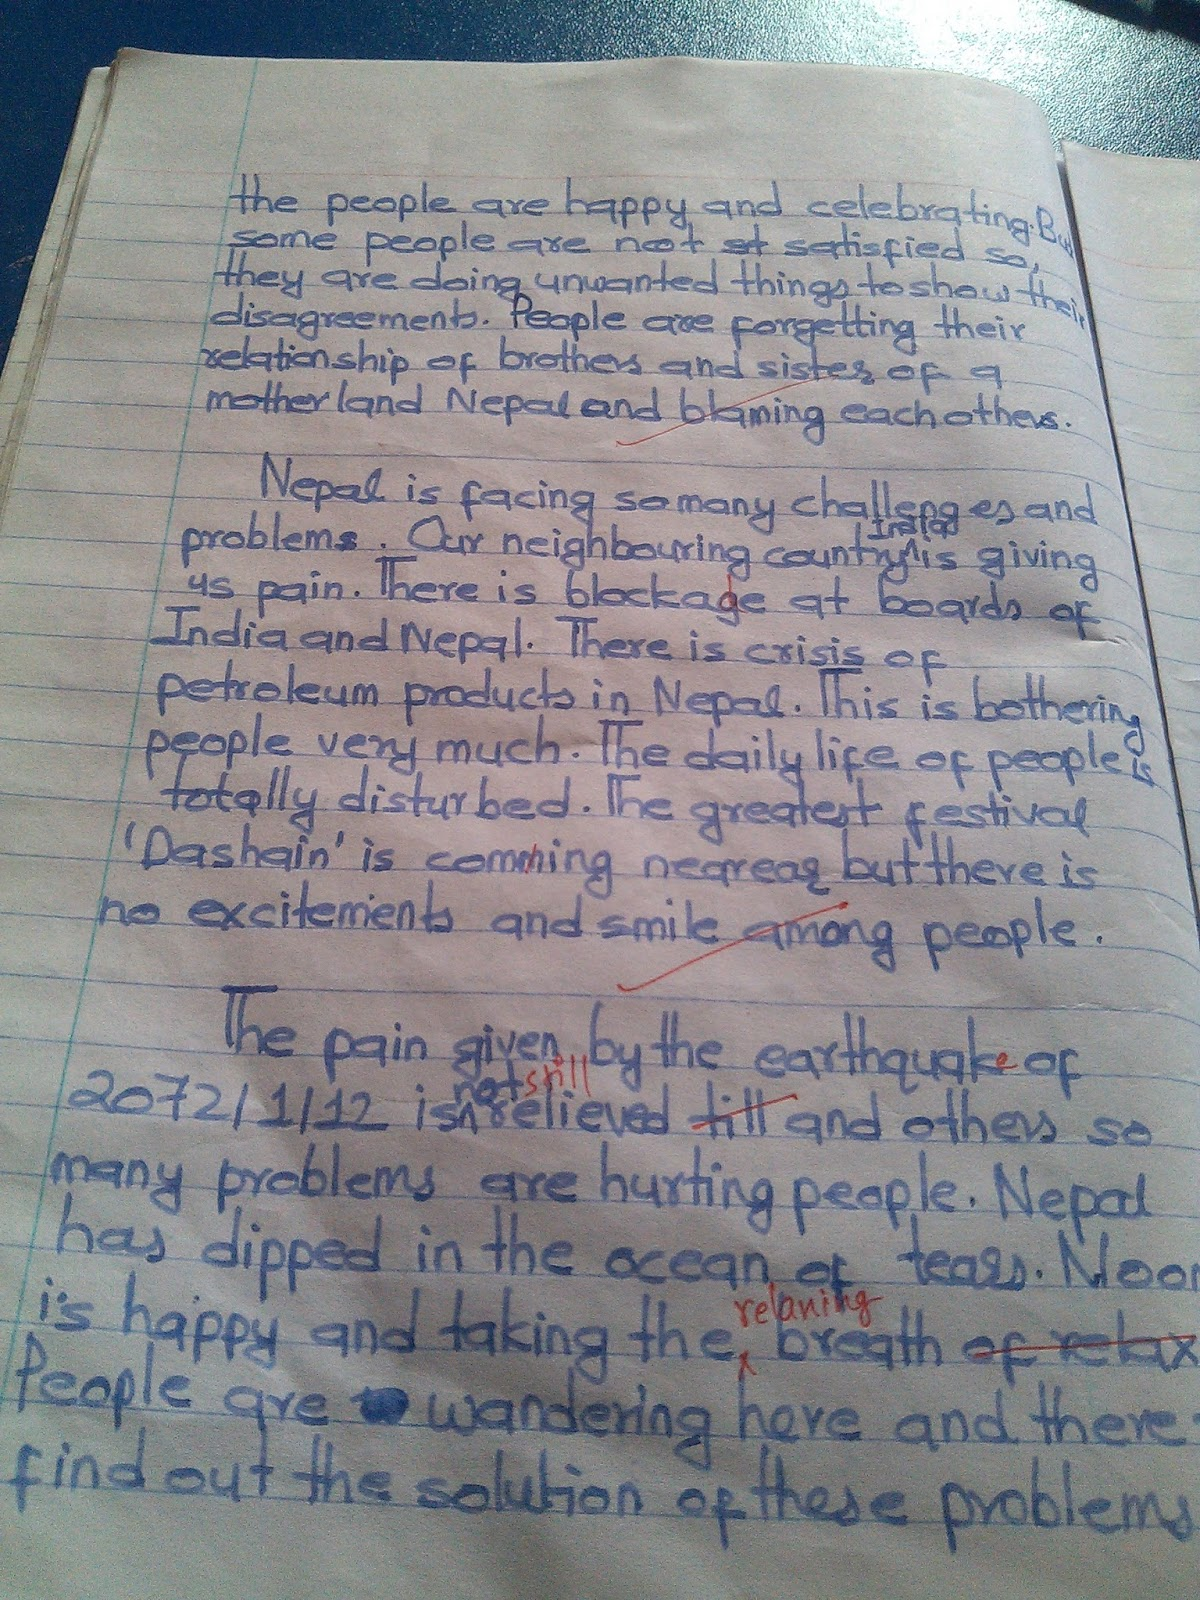 About my holiday essay motherland nepal